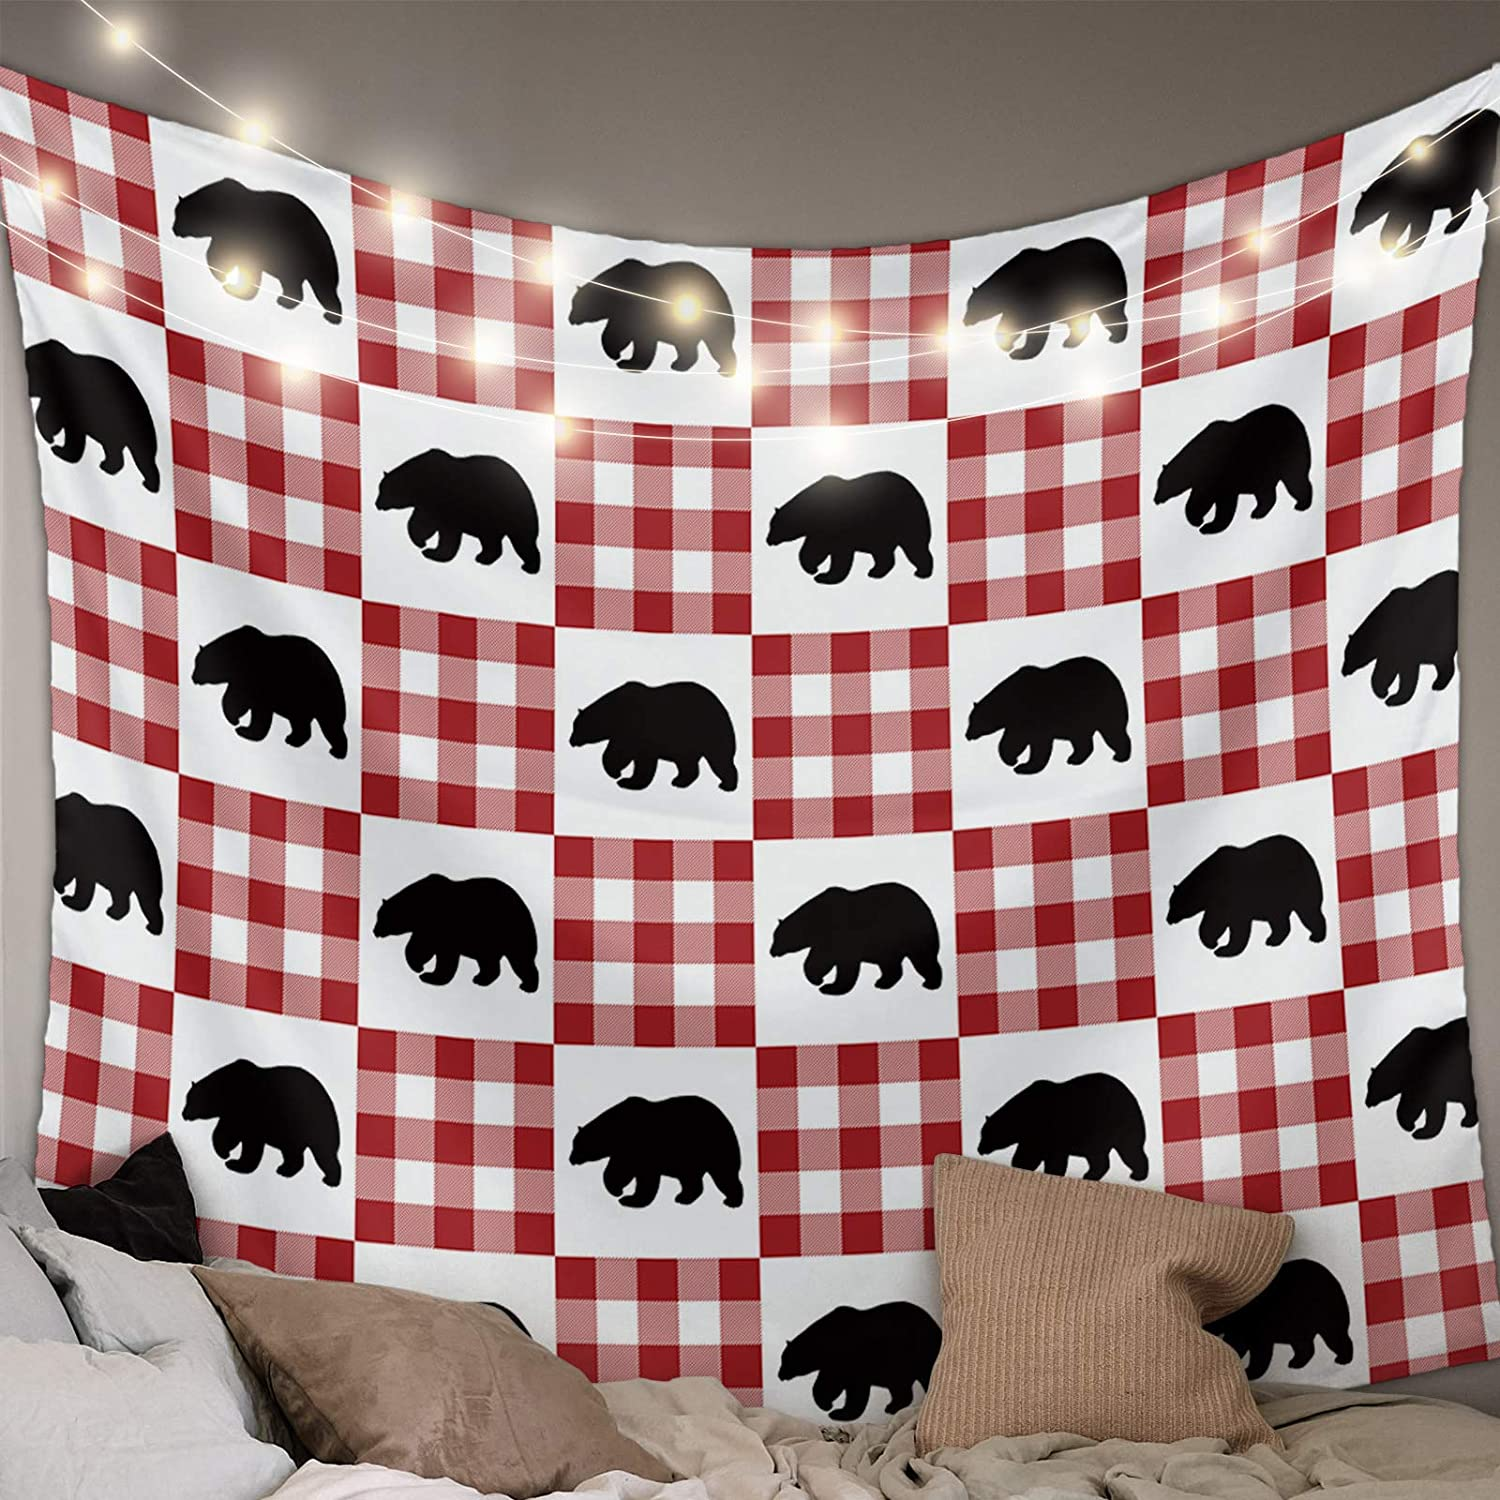 Womenfocus WallHangingTapestries Max 79% OFF Polar Bear Complete Free Shipping Red GridArtP on